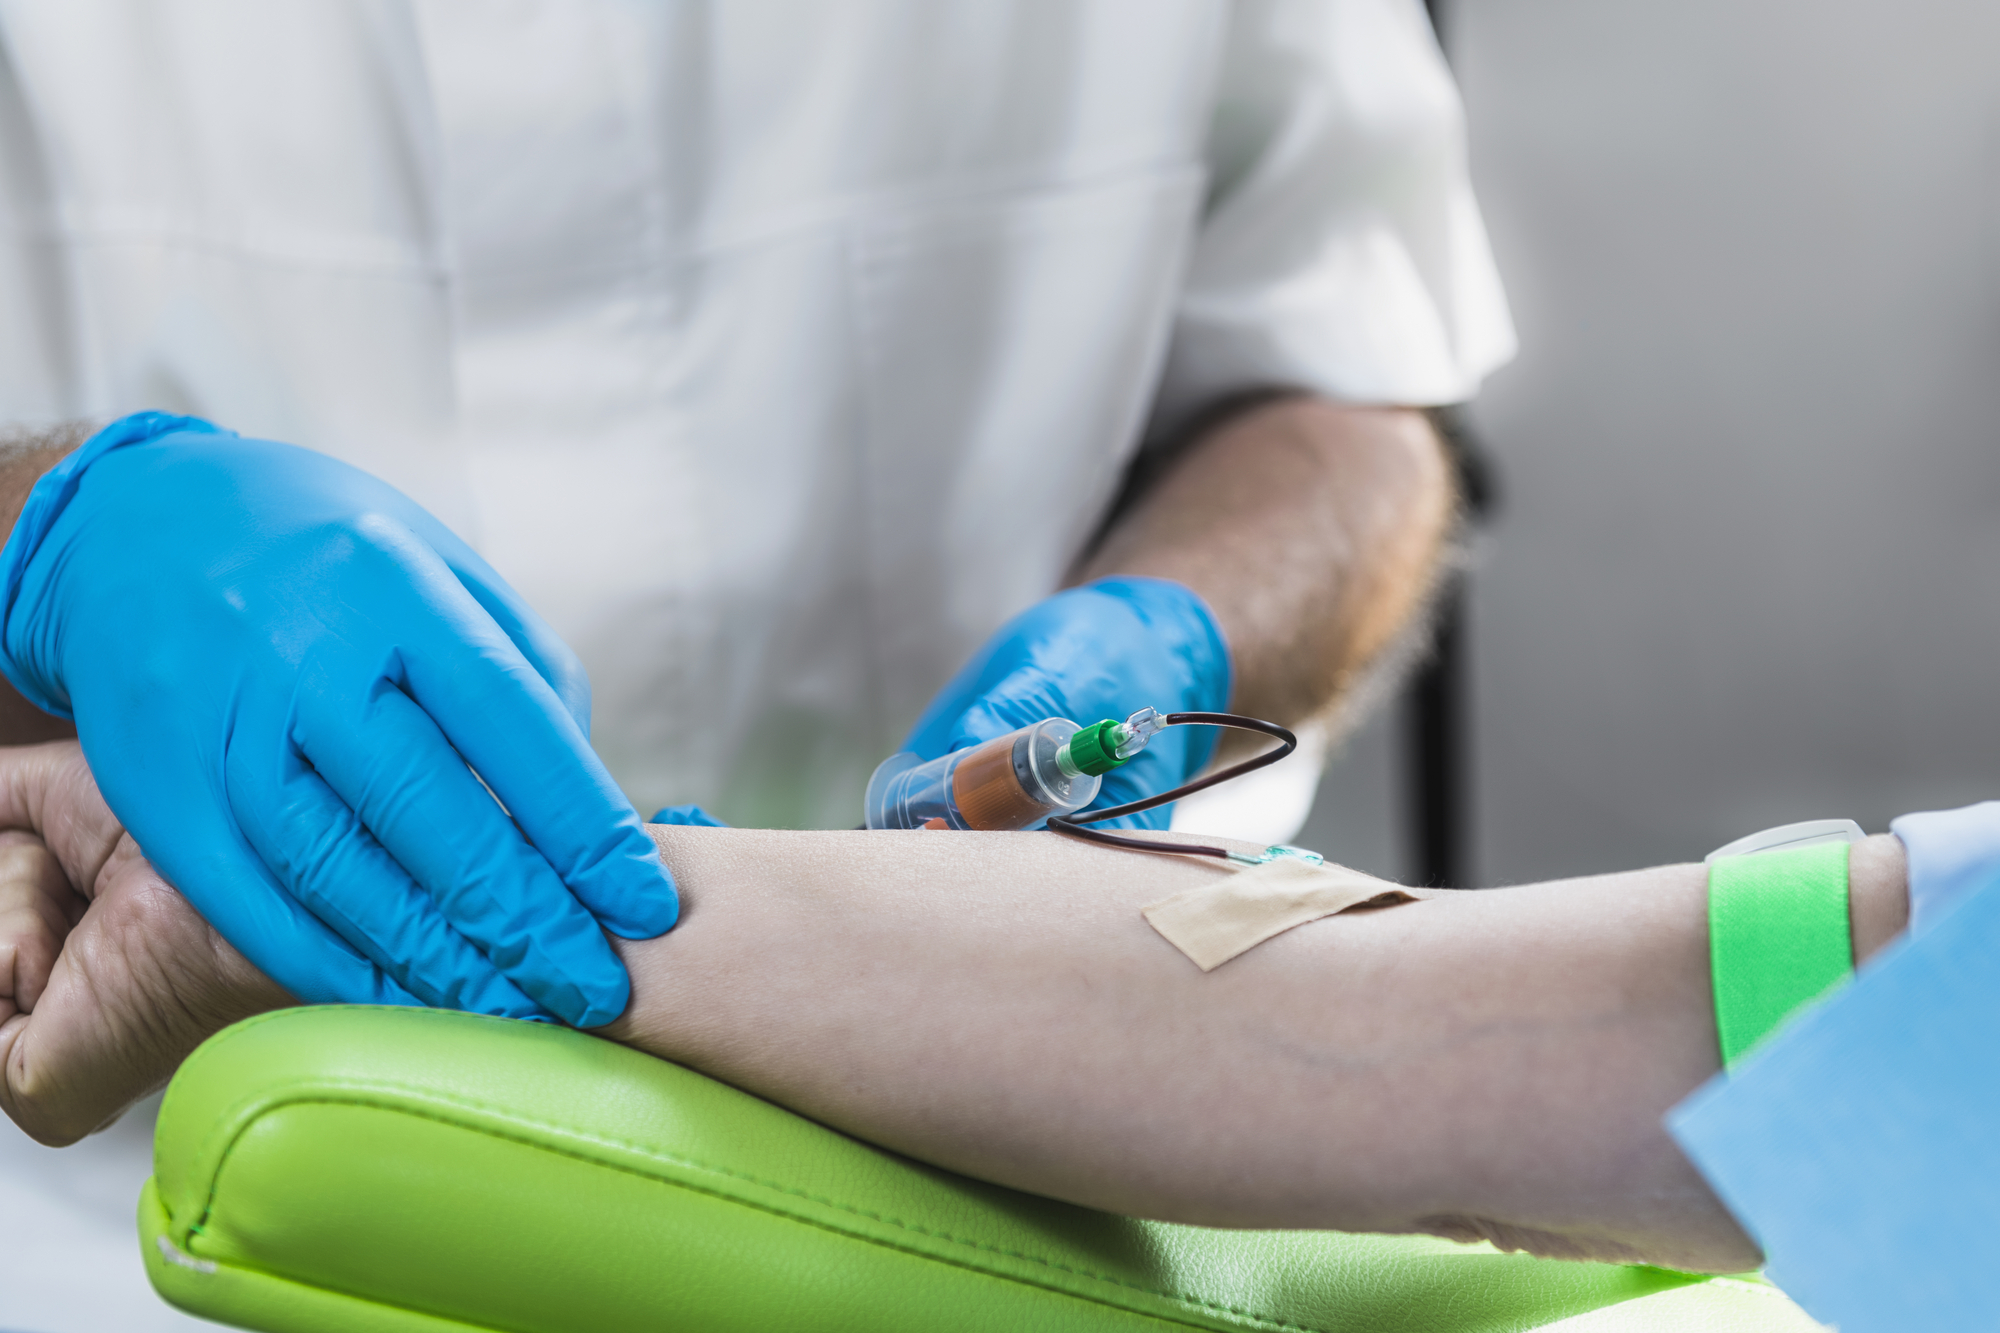 Administering platelet-rich plasma therapy